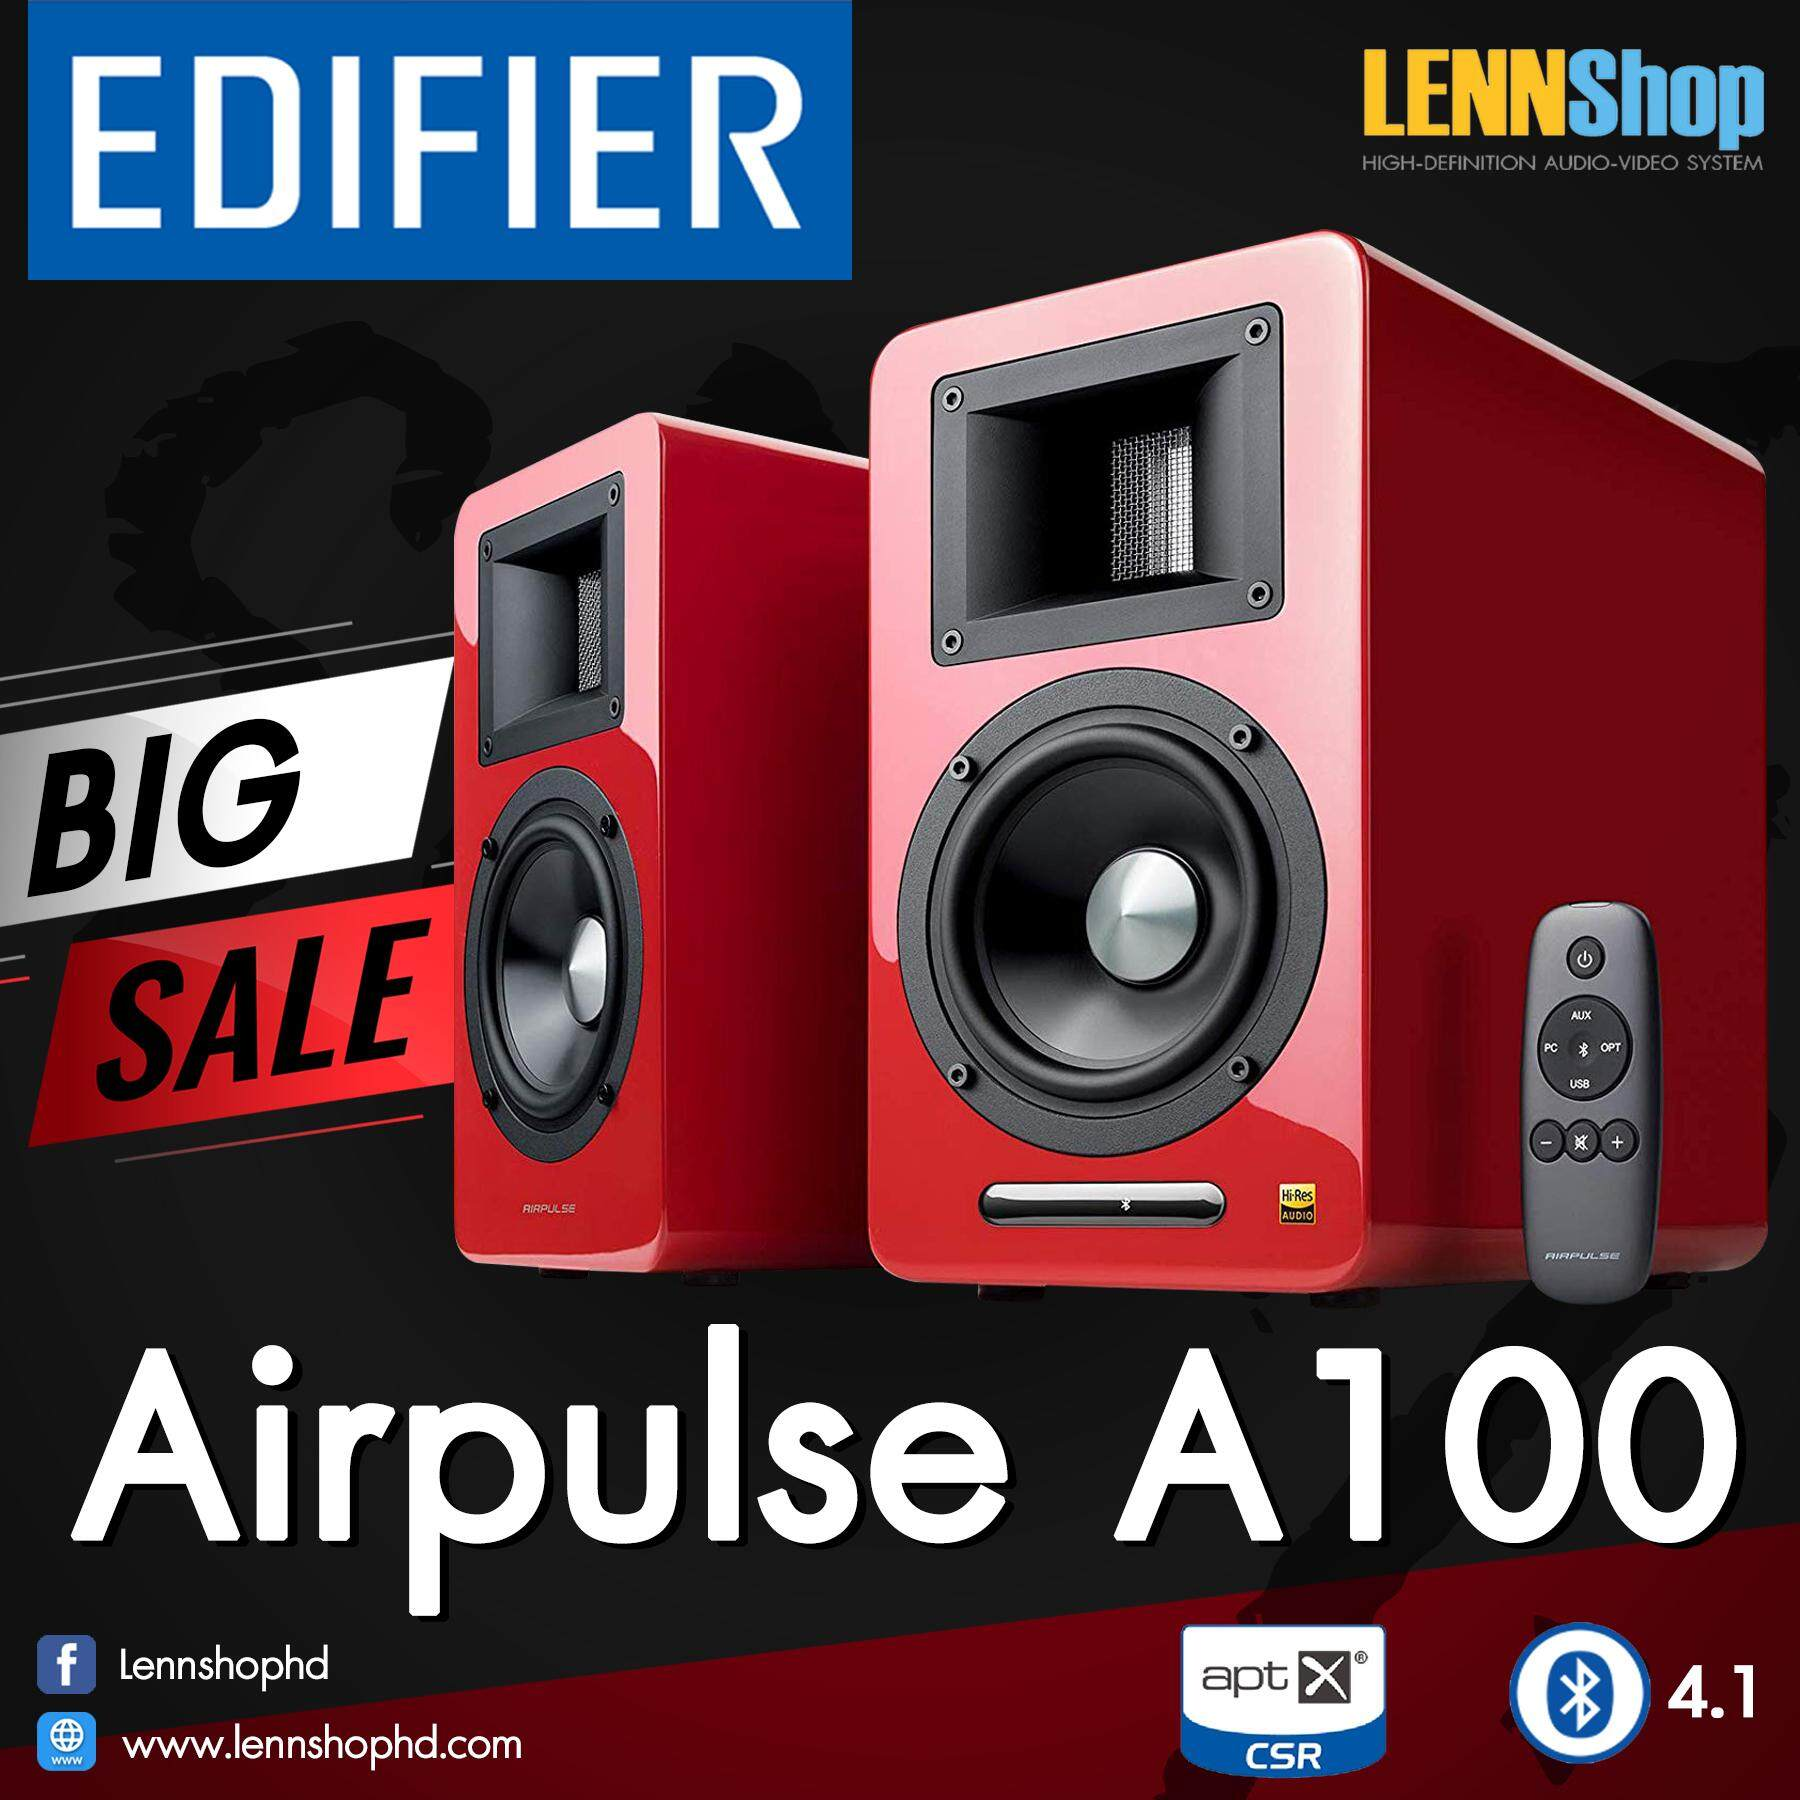 นครปฐม Edifier Airpulse A100 Hi-Res Audio Certified Active Speaker System Built-in Amplifier Optical  Coaxial  Bluetooth 4.1 - Red